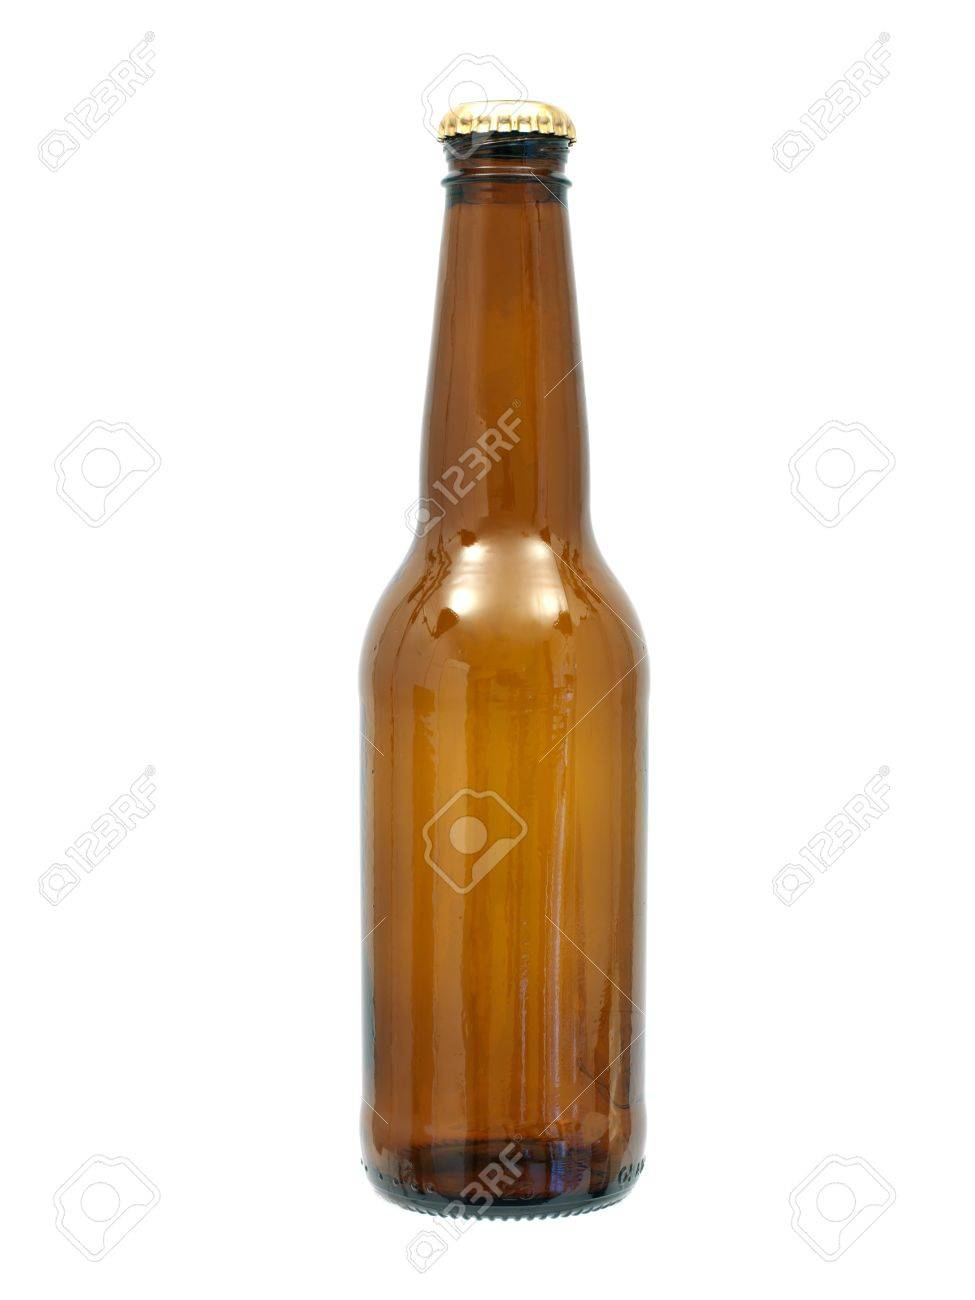 Bottles of beer isolated against a white background Stock Photo - 10012074